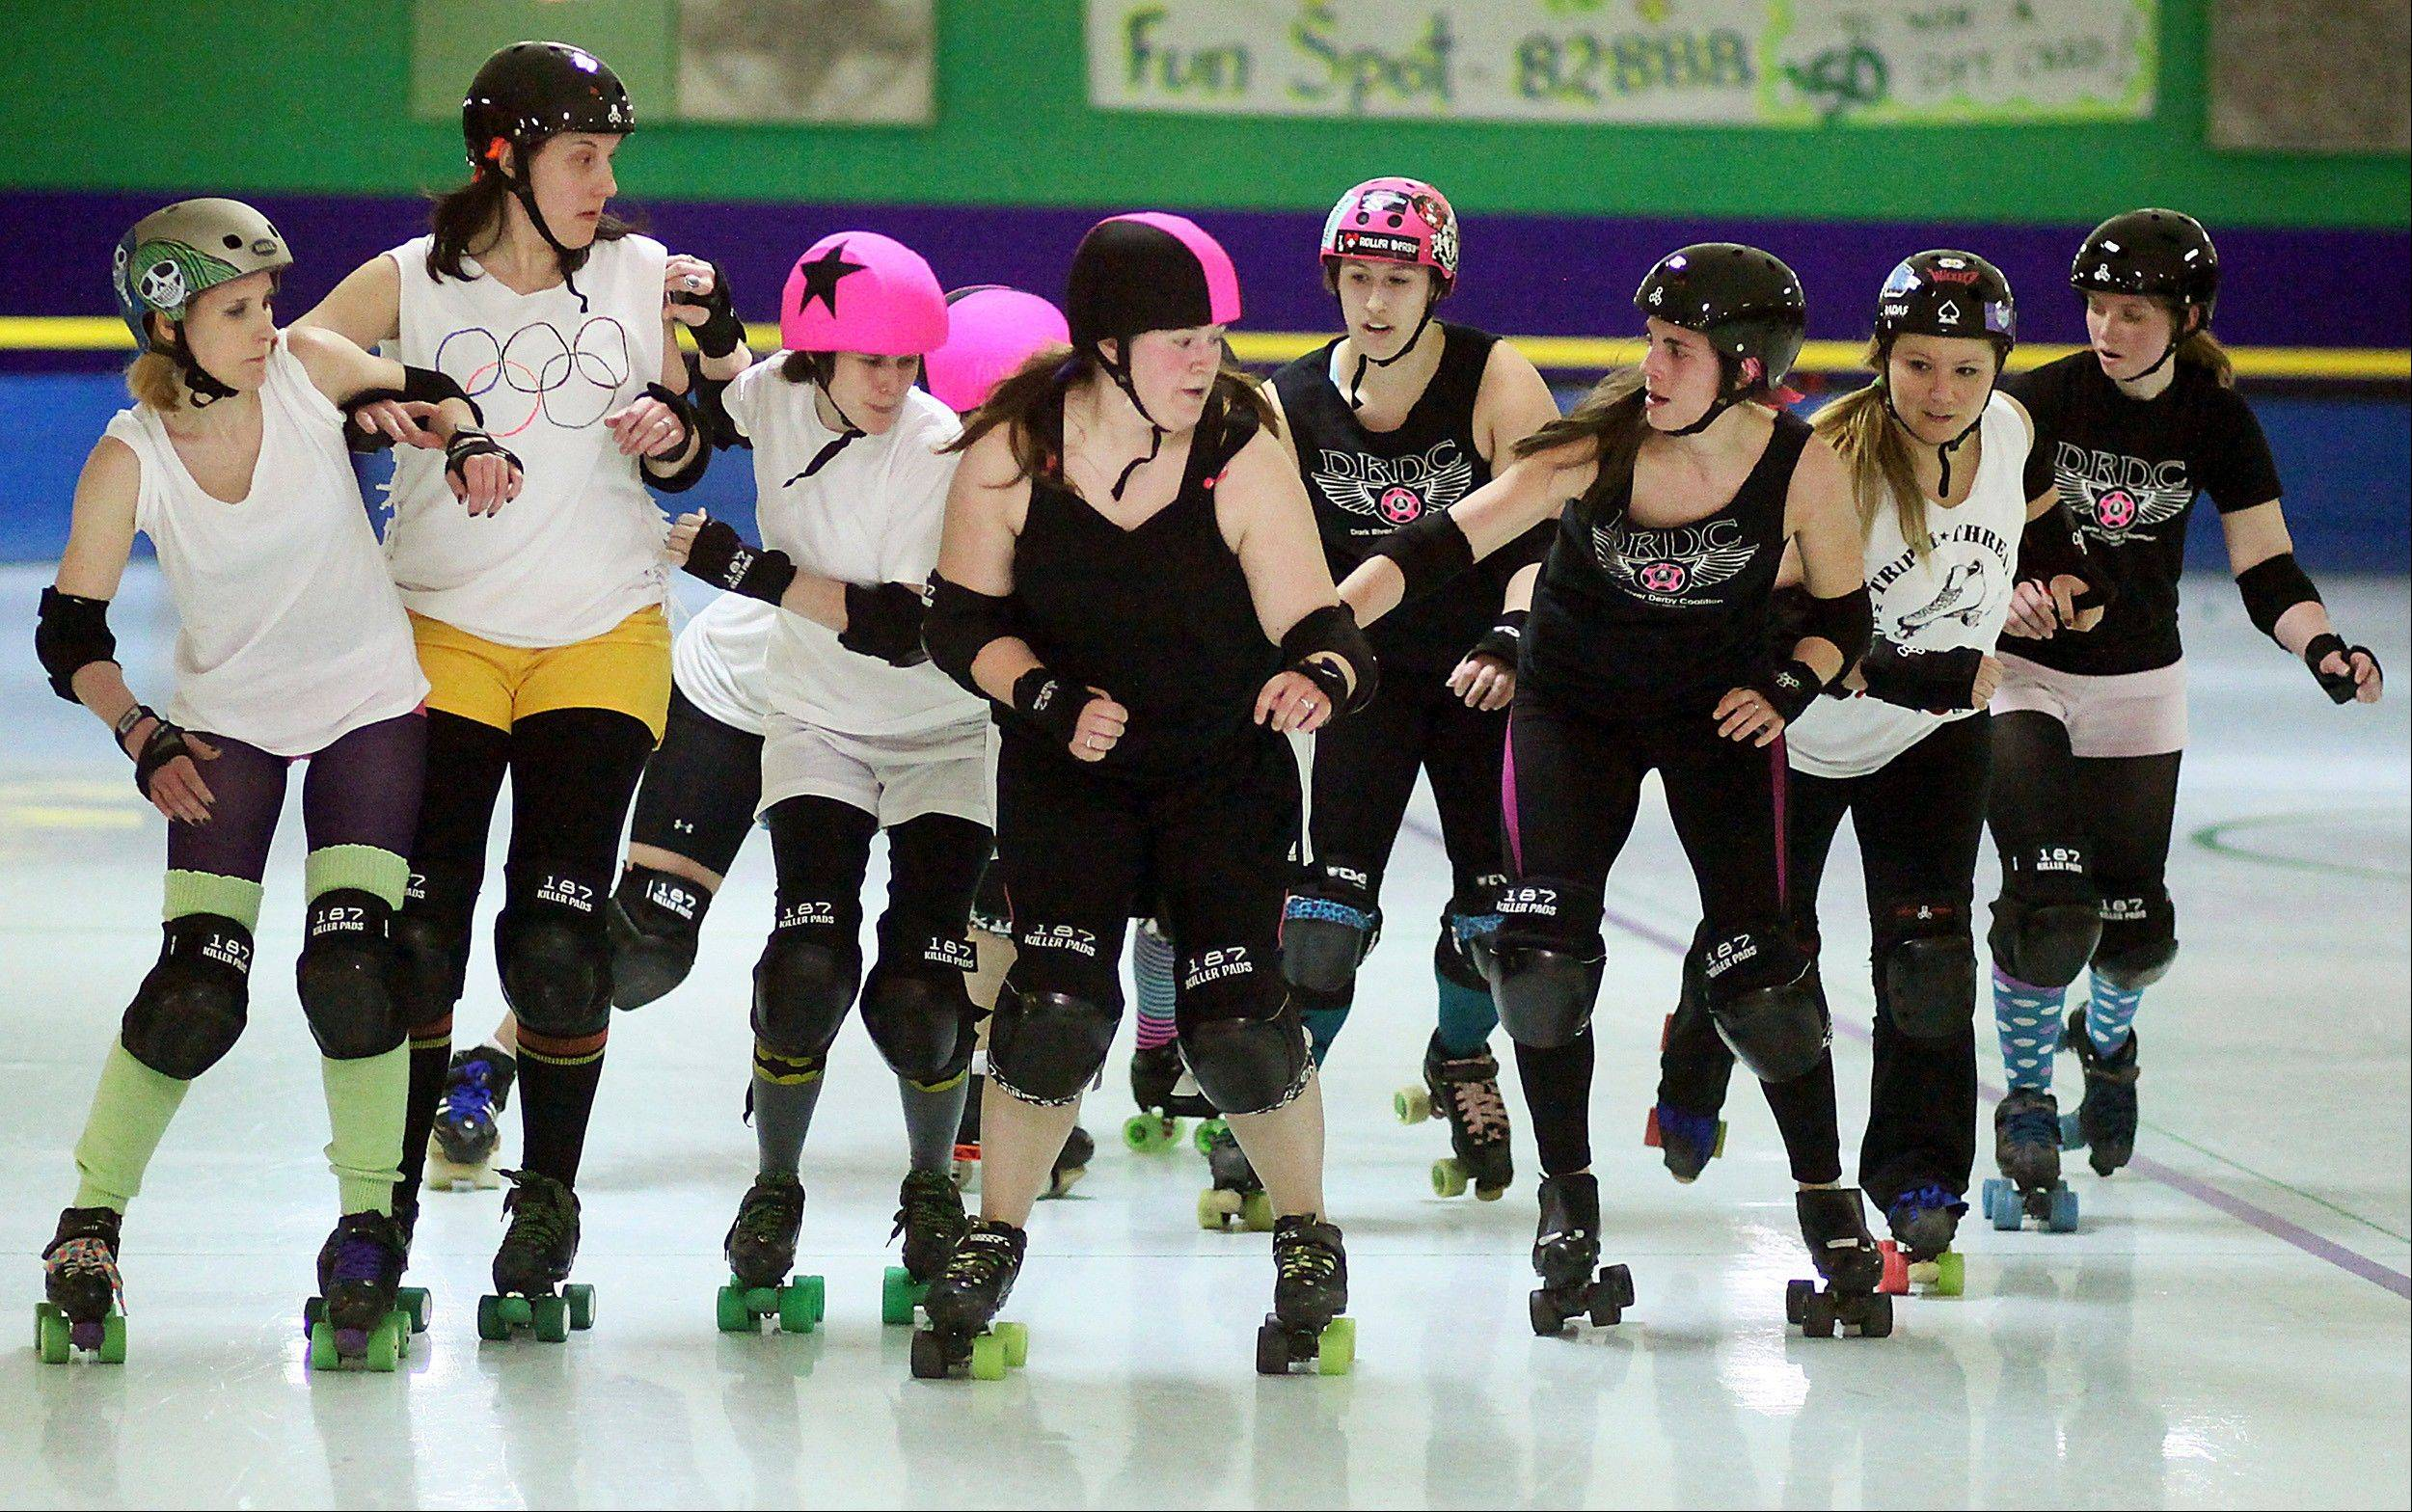 The Dark River Derby Coalition women's roller derby team, divided up into two teams, practice at Scotties Fun Spot in Quincy.